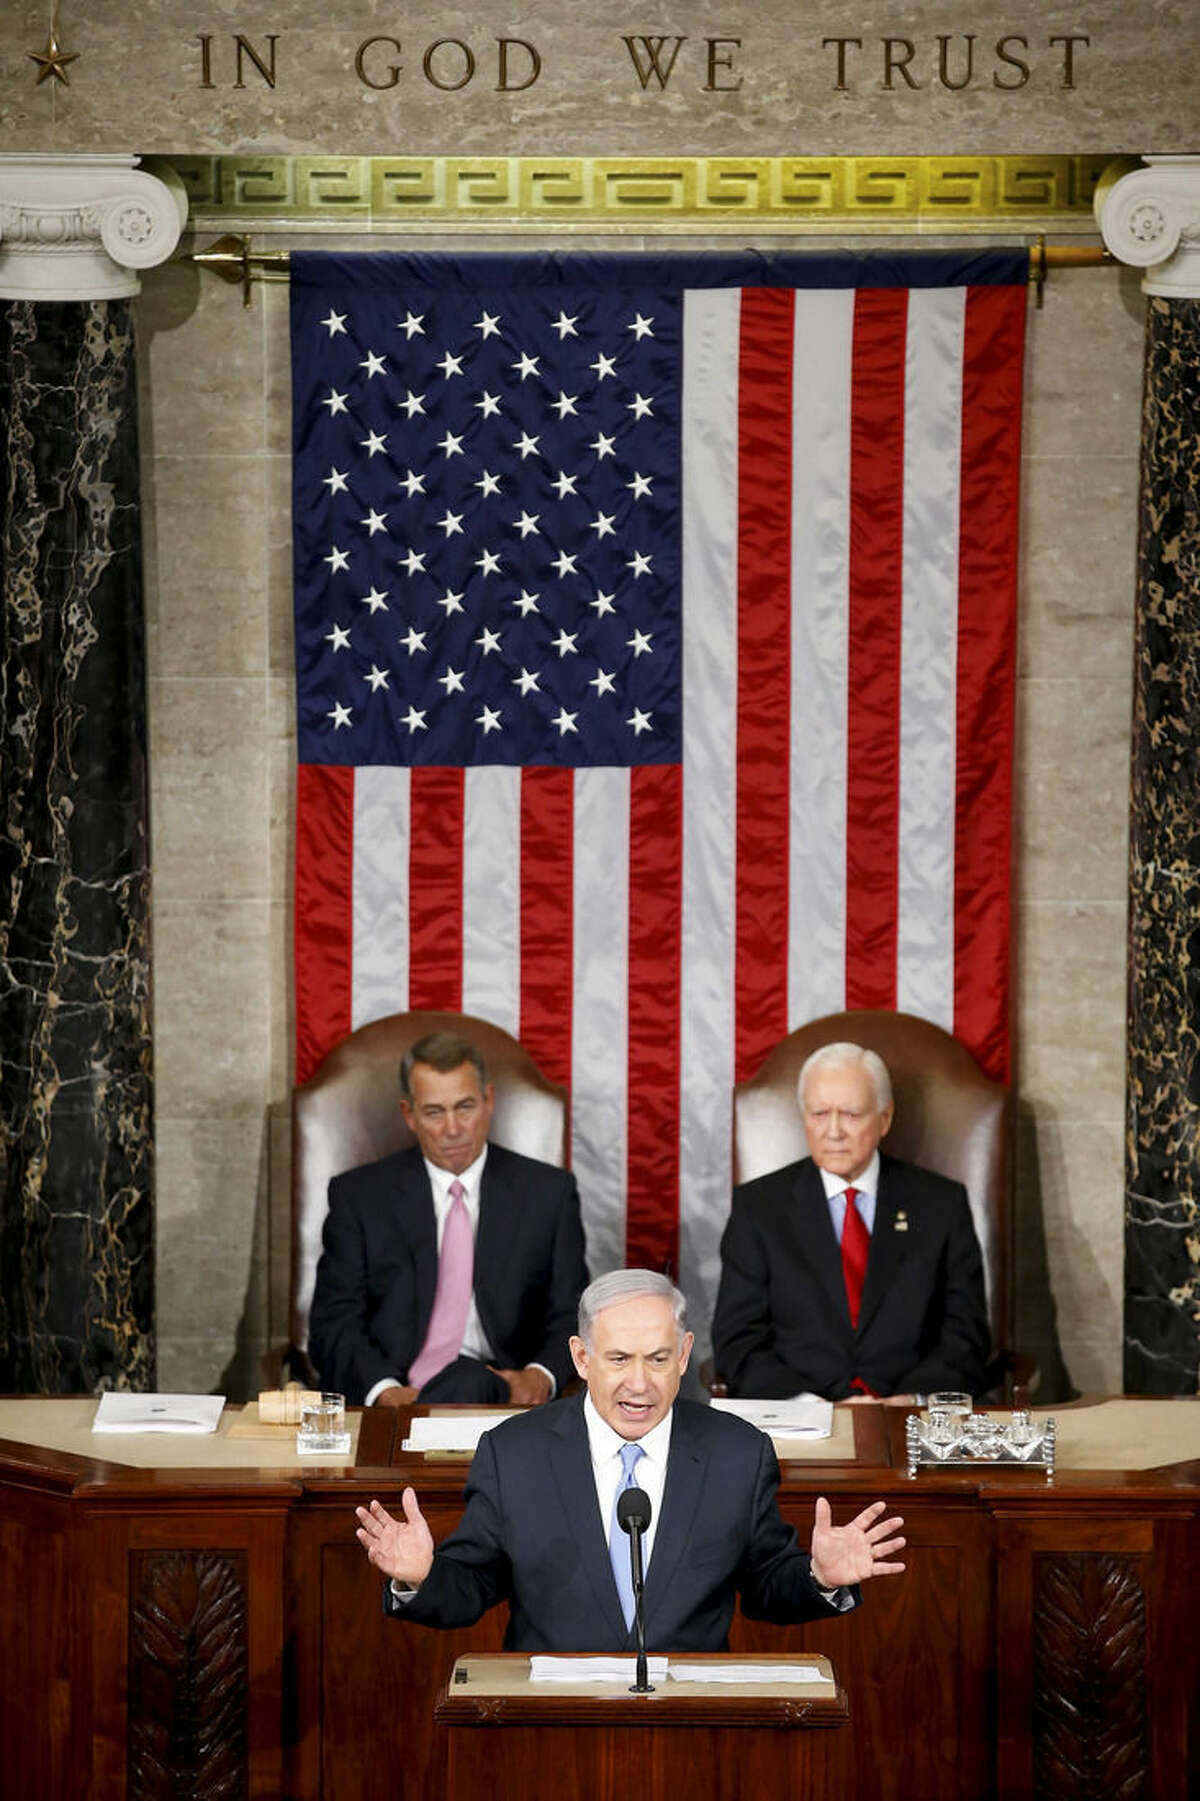 Israeli Prime Minister Benjamin Netanyahu speaks before a joint meeting of Congress on Capitol Hill in Washington, Tuesday, March 3, 2015. Netanyahu is using the address to warn against trusting Iran to curb its nuclear ambitions. House Speaker John Boehner of Ohio, left, and Sen. Orrin Hatch, R-Utah, listen. (AP Photo/Andrew Harnik)